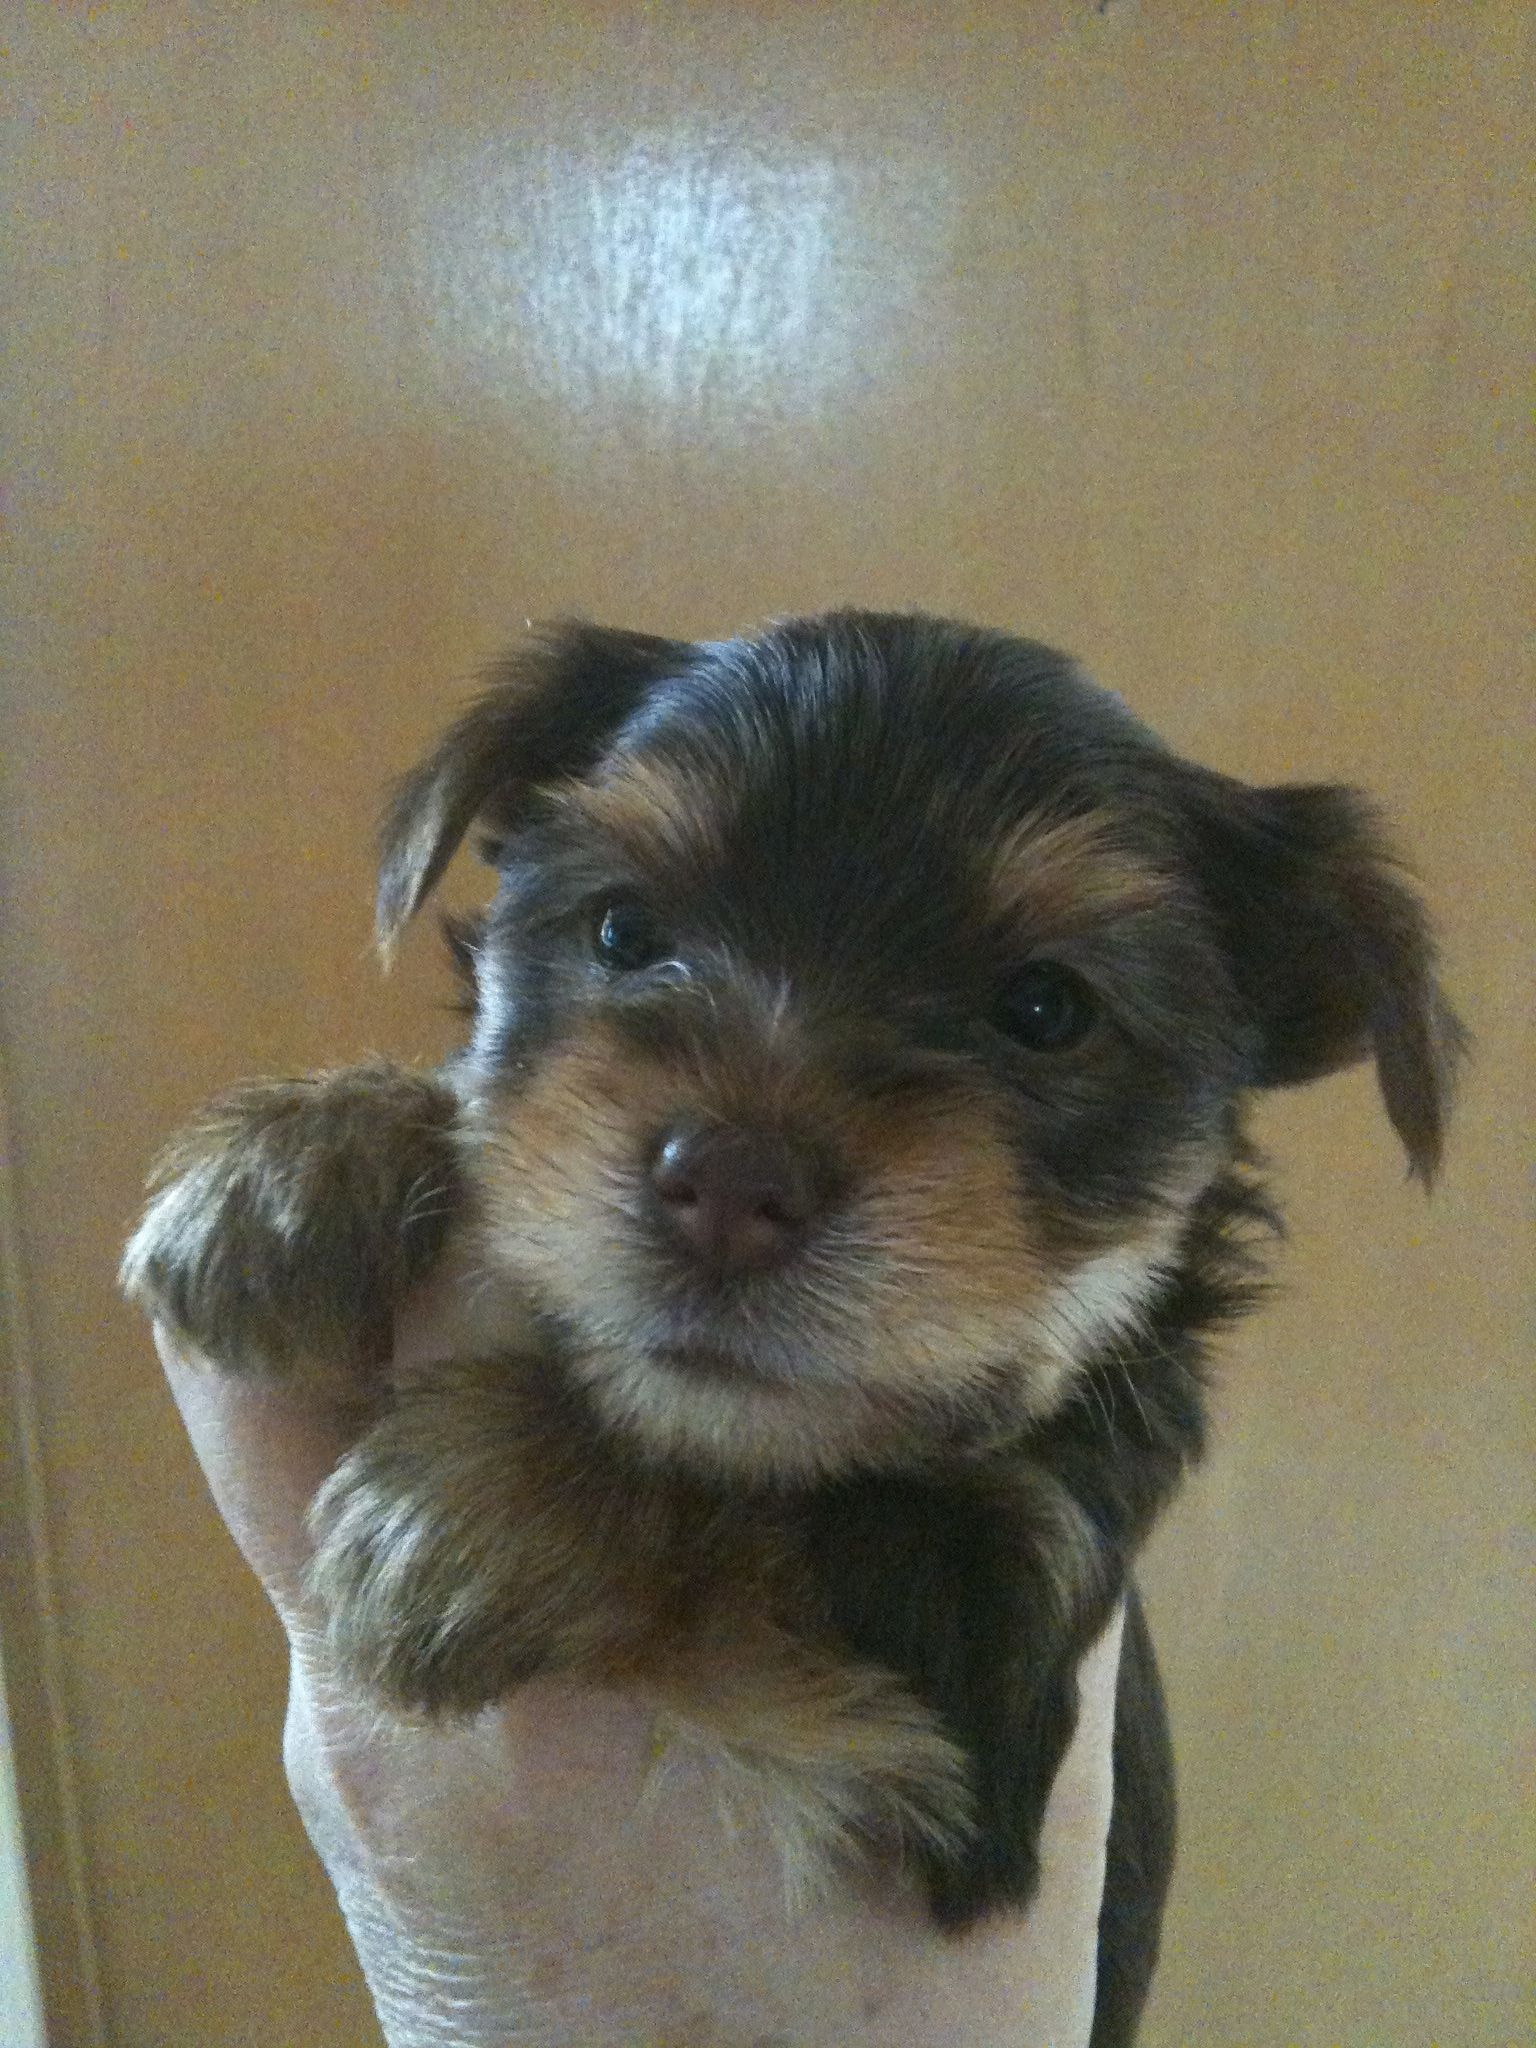 Chocolate Yorkie 5-weeks old | Paws | Pinterest | Chocolate and Yorkie